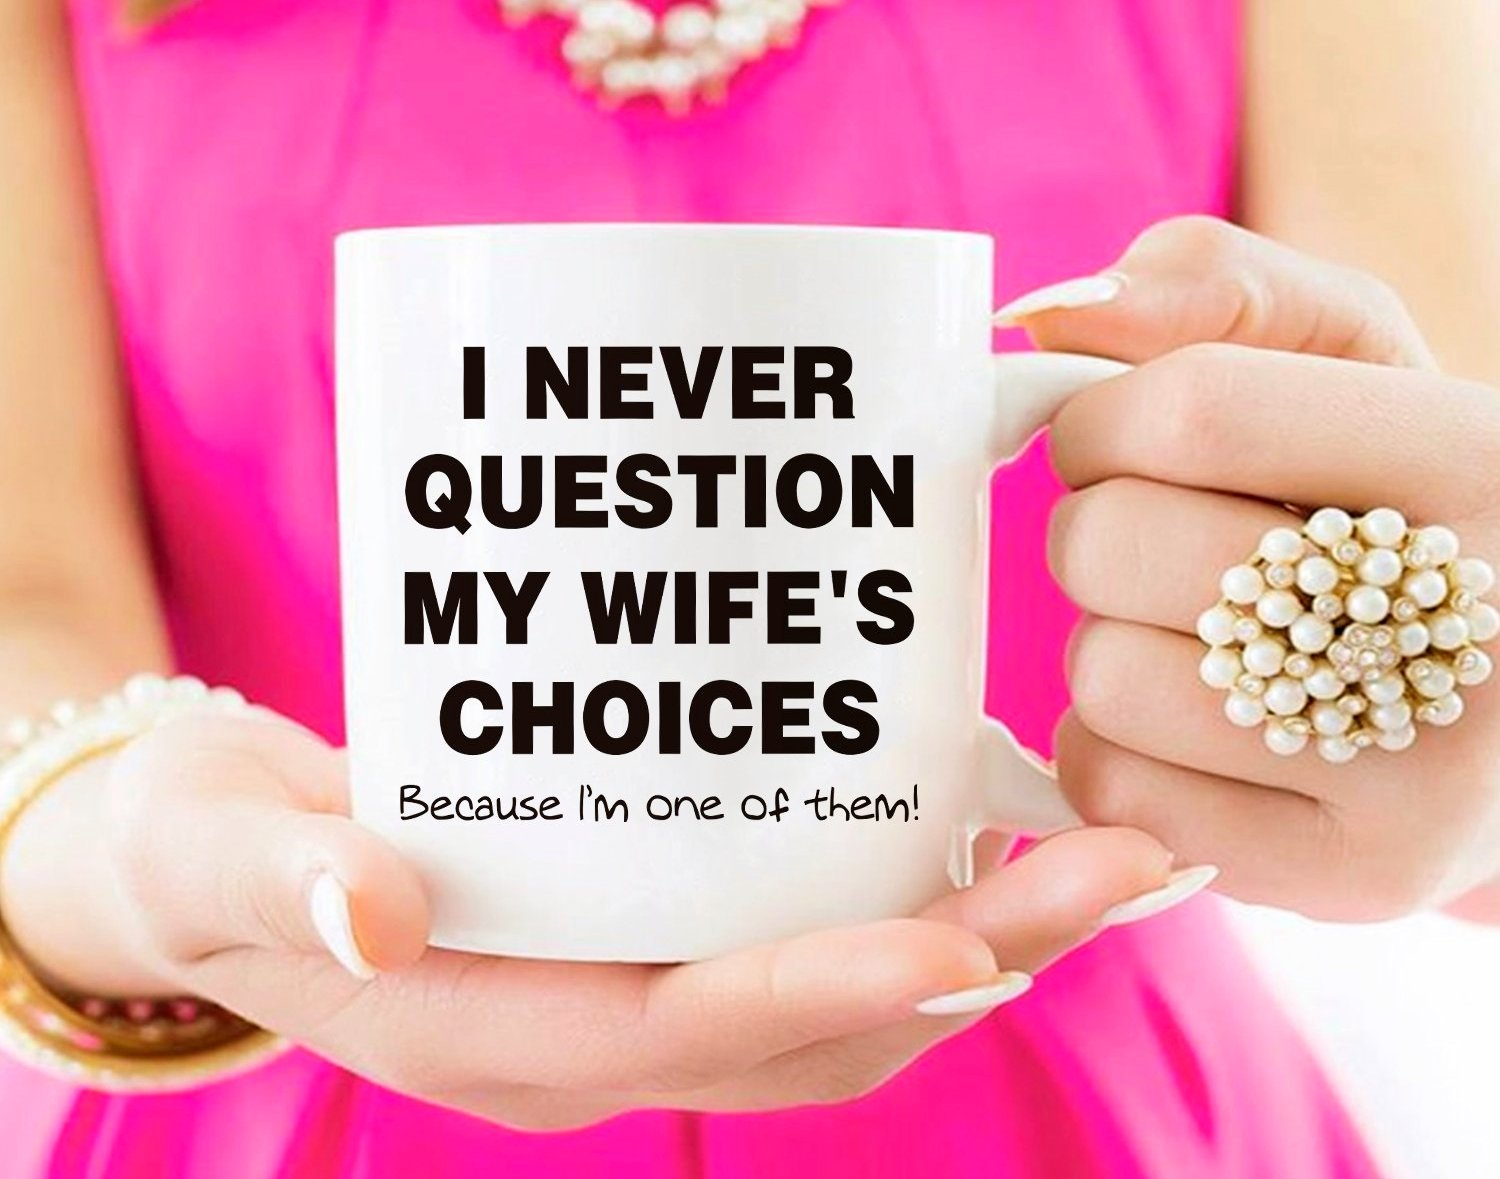 20 Best Coffee Mug Quotes For Husband Images